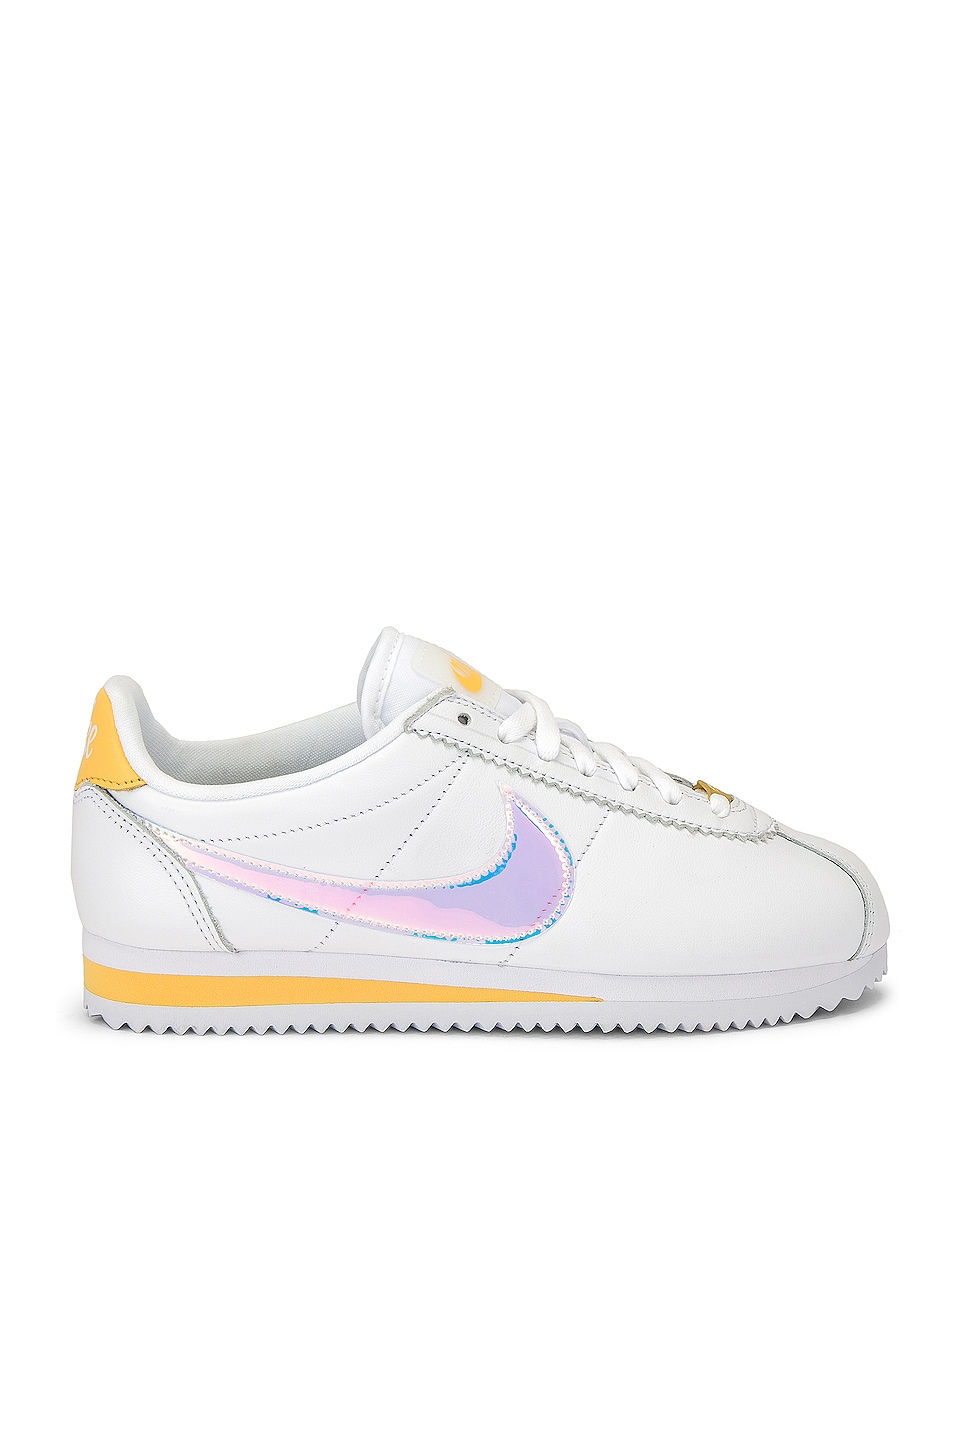 sports shoes c947c 32ab9 Nike Classic Cortez Sneaker in White, Clear, Topaz & Gold ...